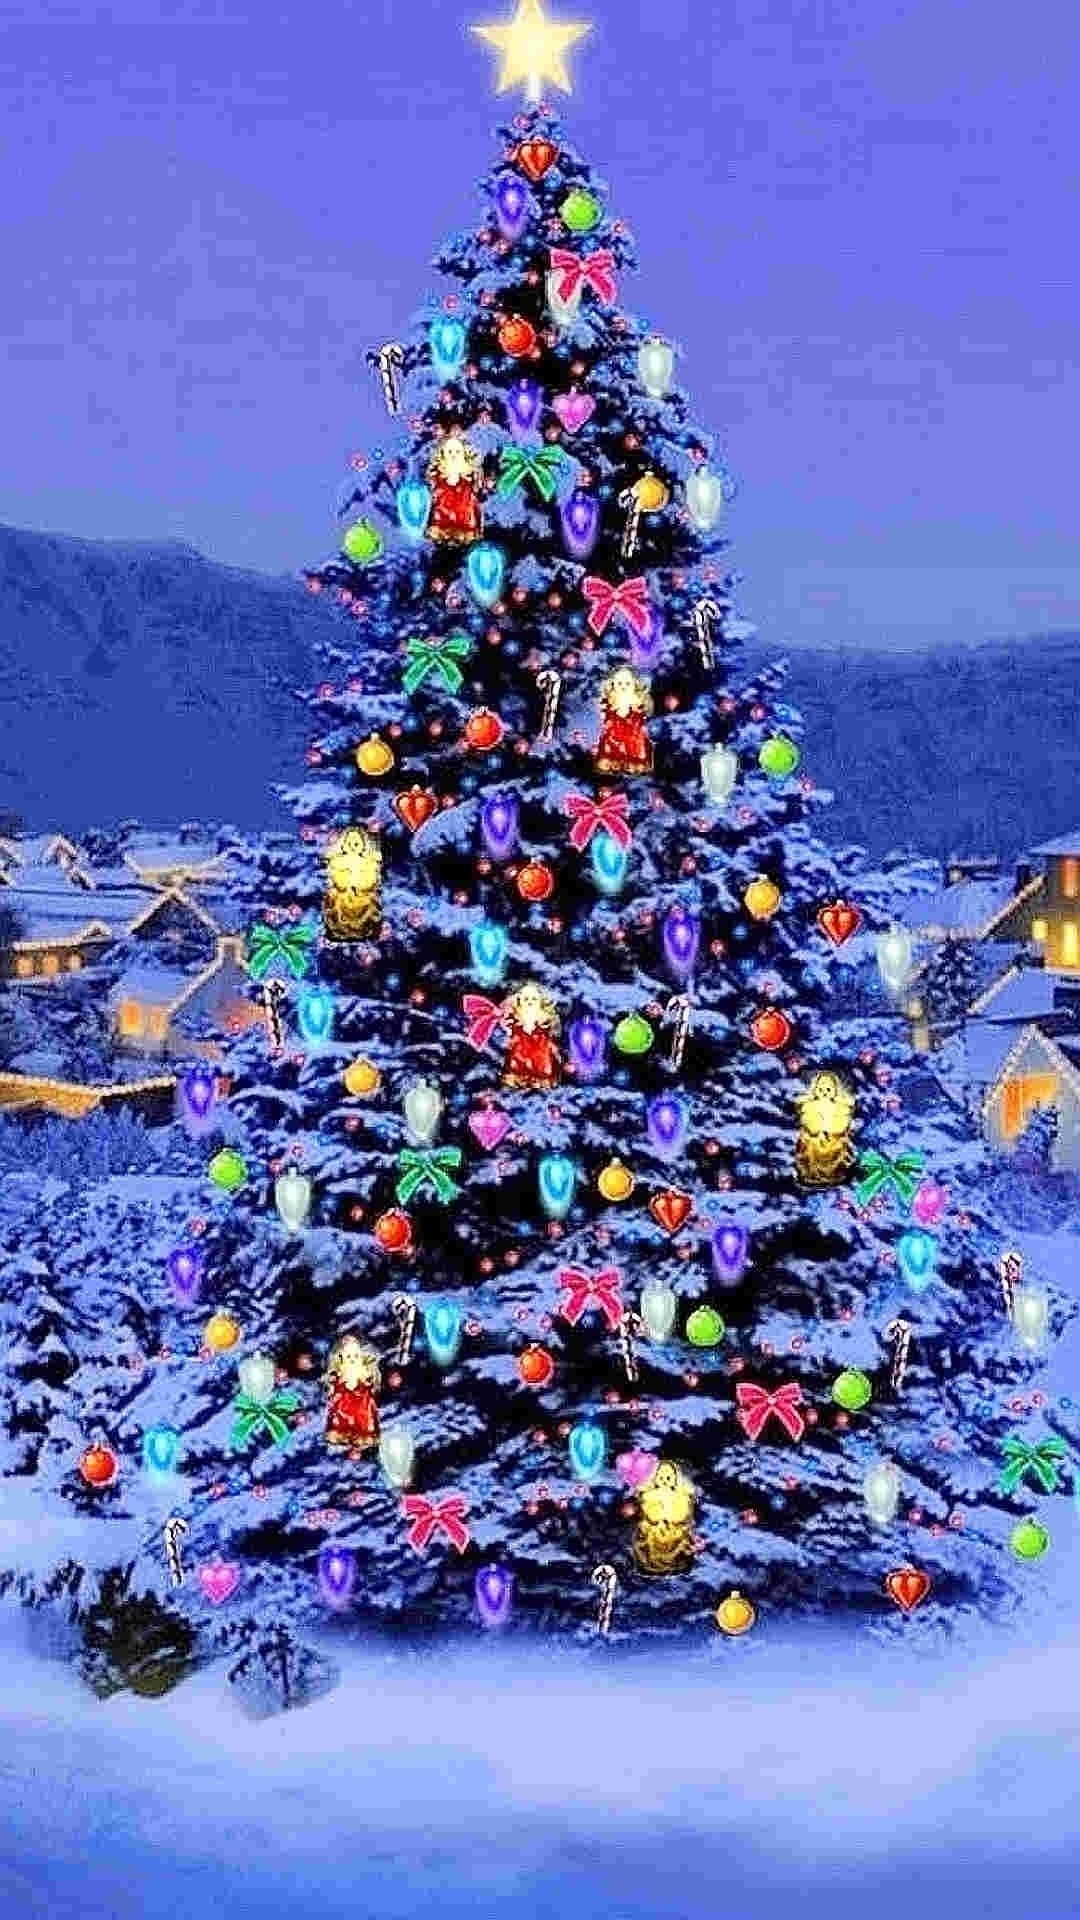 Awesome Animated Christmas Wallpaper For Iphone 6 Plus - Christmas Tree In The Mountains , HD Wallpaper & Backgrounds